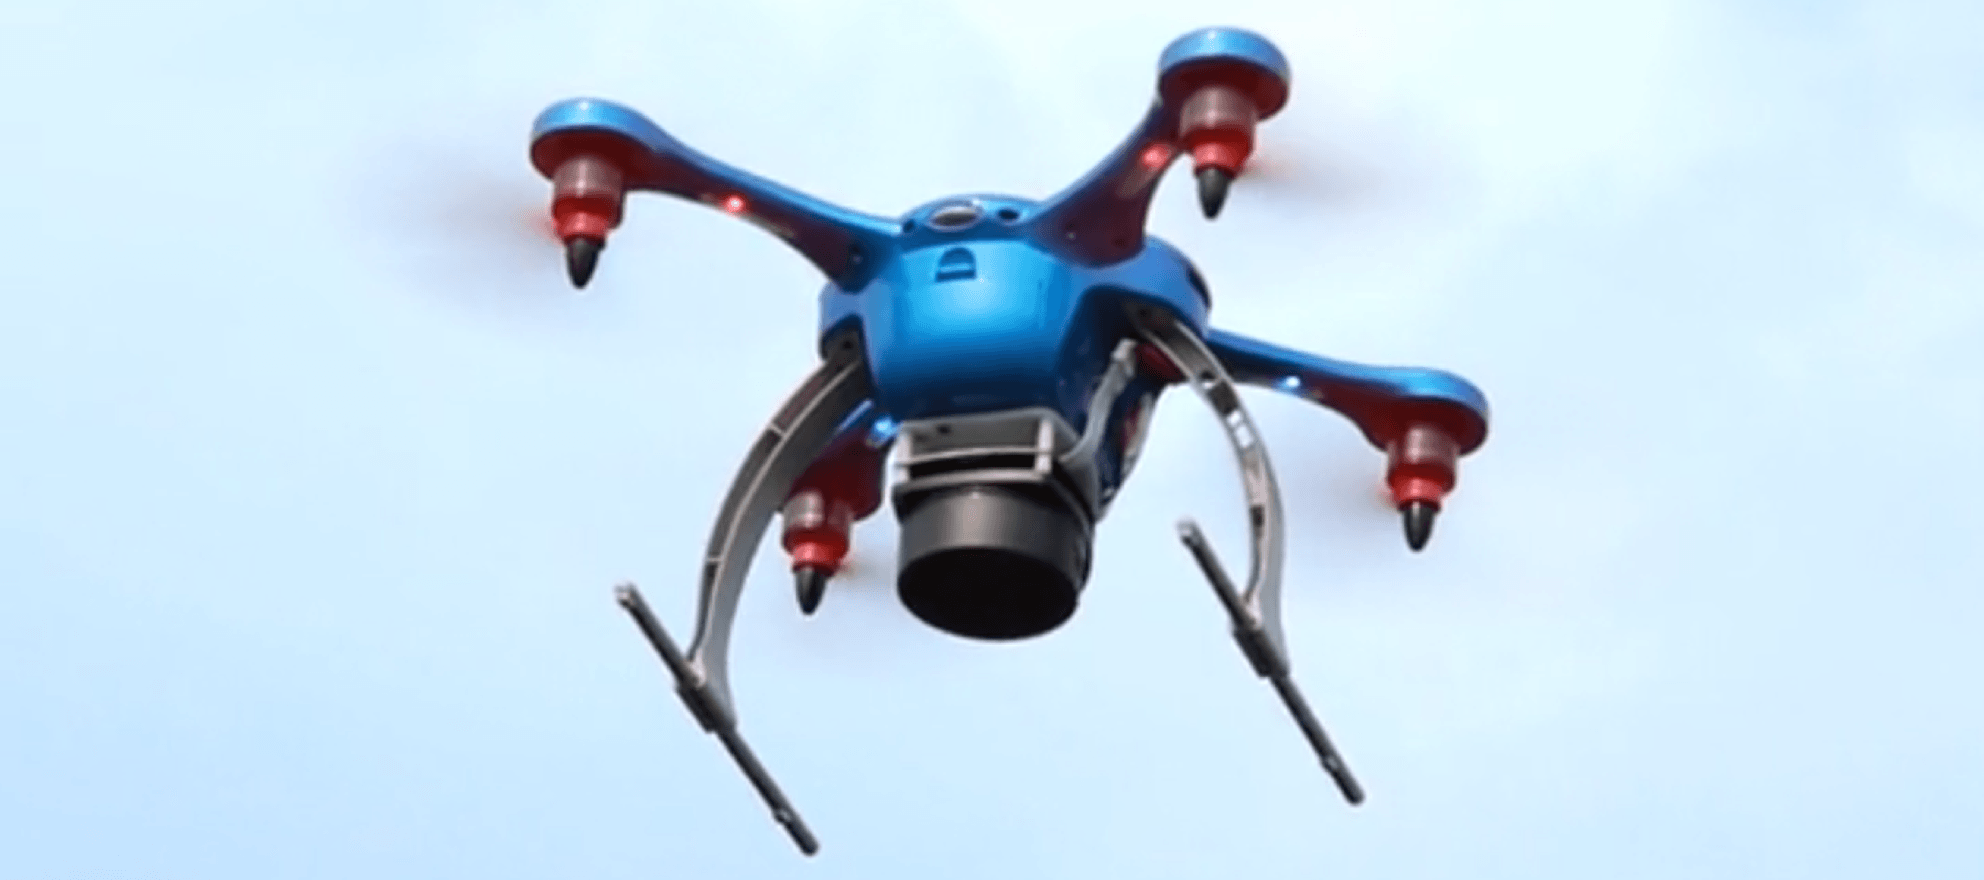 Presales of easy-to-fly, $375 drone through the roof